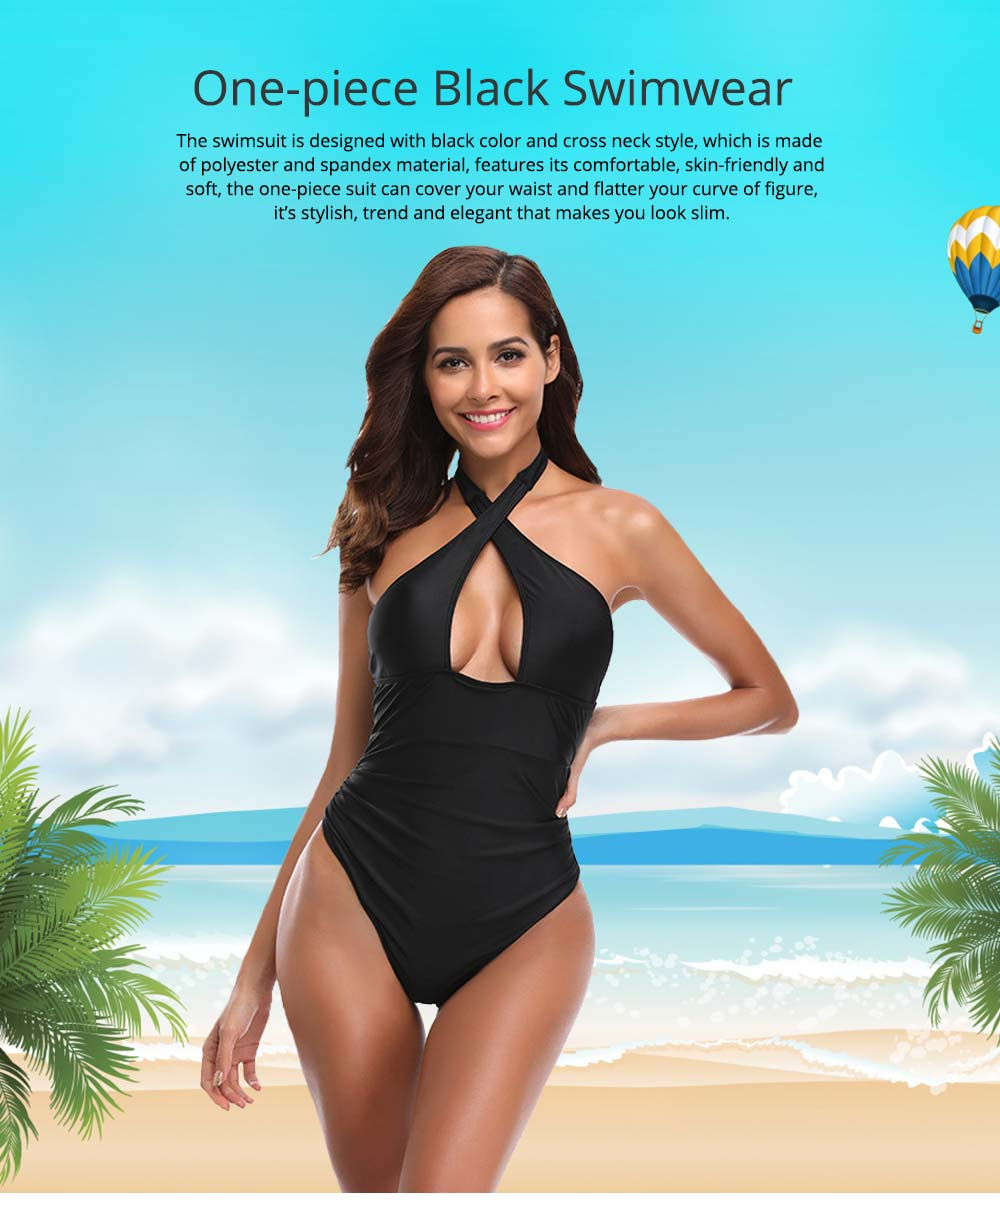 Polyester Spandex Swimsuit Cross Neck Black Bikini Cover Stomach Design for Women Sexy Bathing Suit One-piece Swimwear for Summer 0